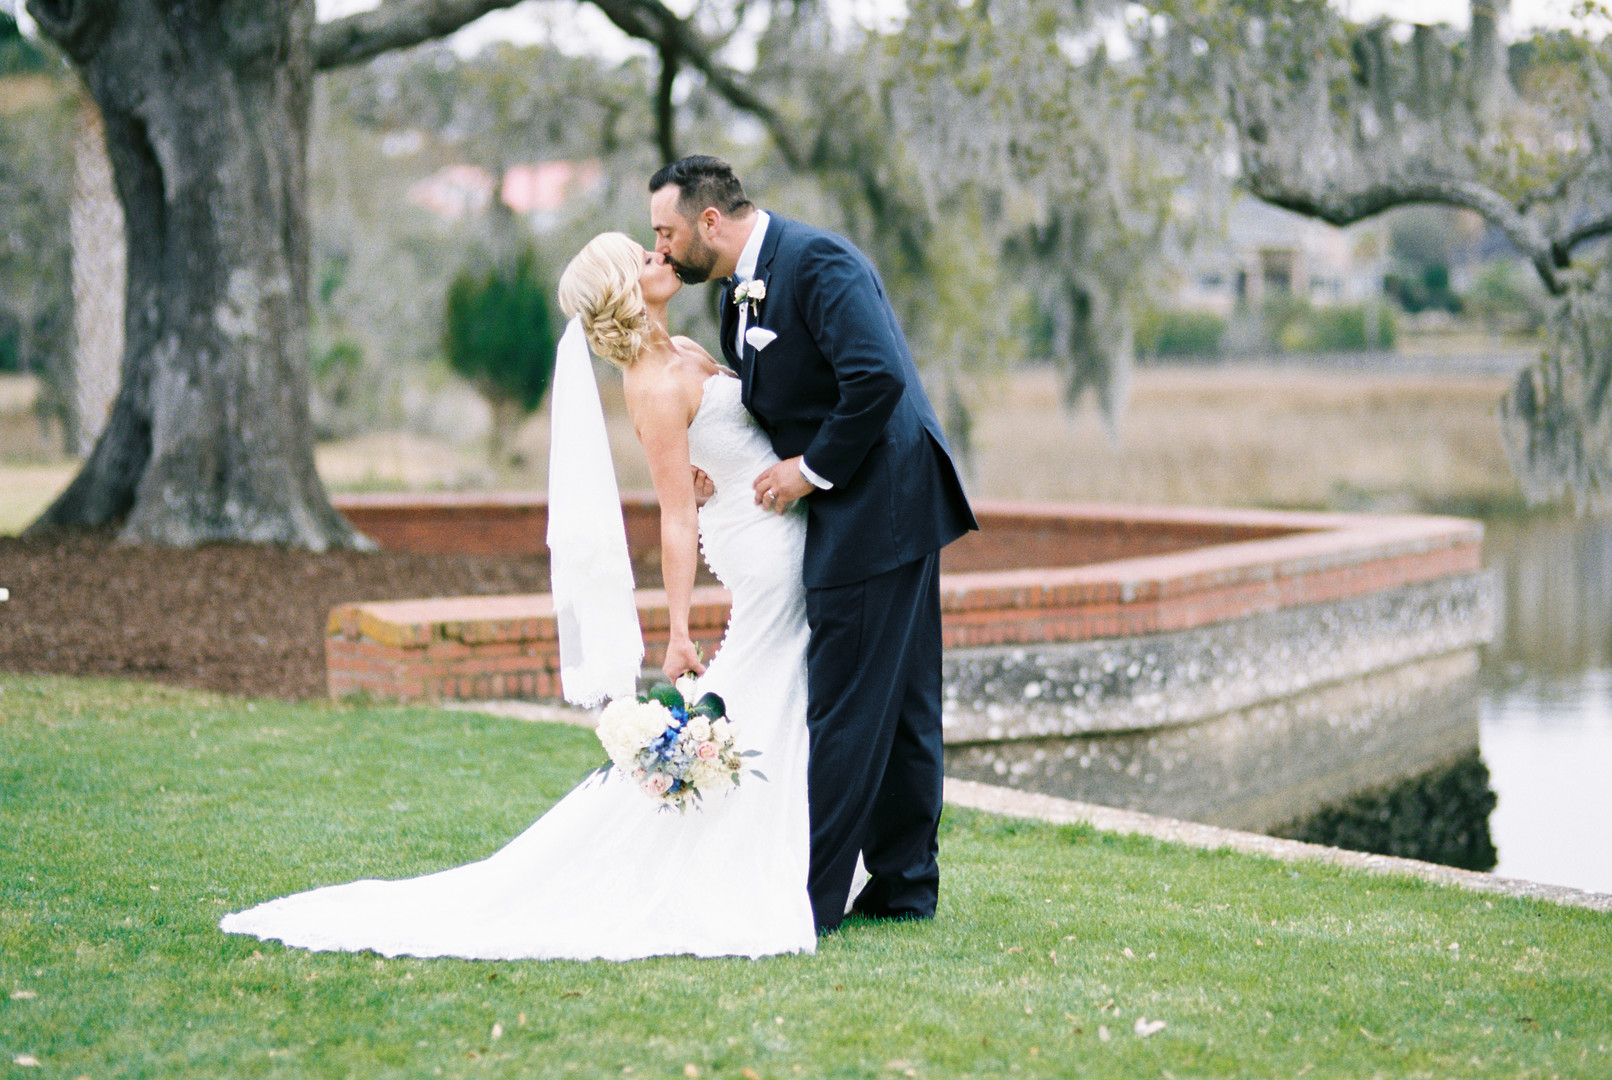 Sheorn_Snijders_CatherineAnnPhotography_catherineannphotographywedding31018carolineericfilm0105_big.jpg